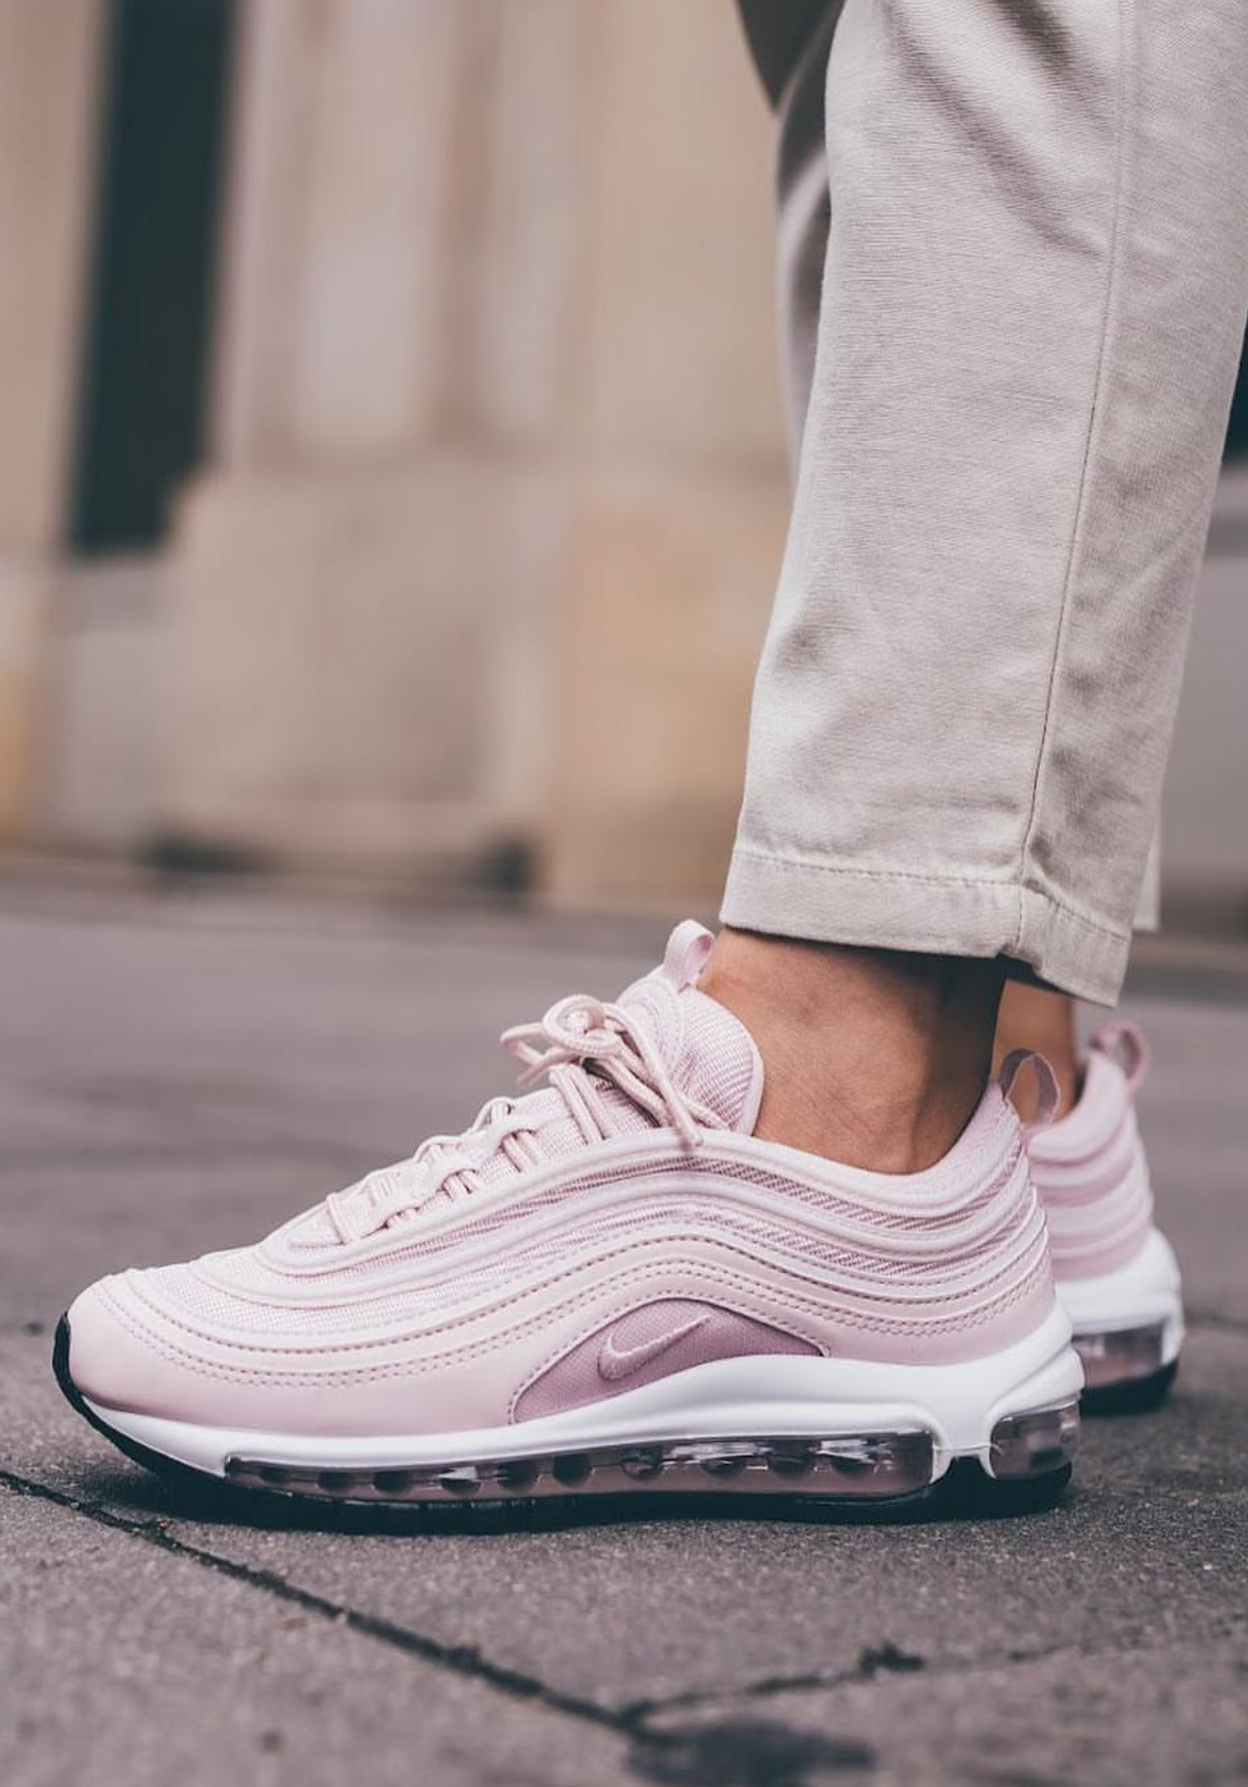 Pink Nike Sneakers Pink Nike W Air Max 97 Sneakers For Women Photo By Streetsupply Pink Casual Sn Sneakers Street Style Nike Air Max Pink Sneakers Nike